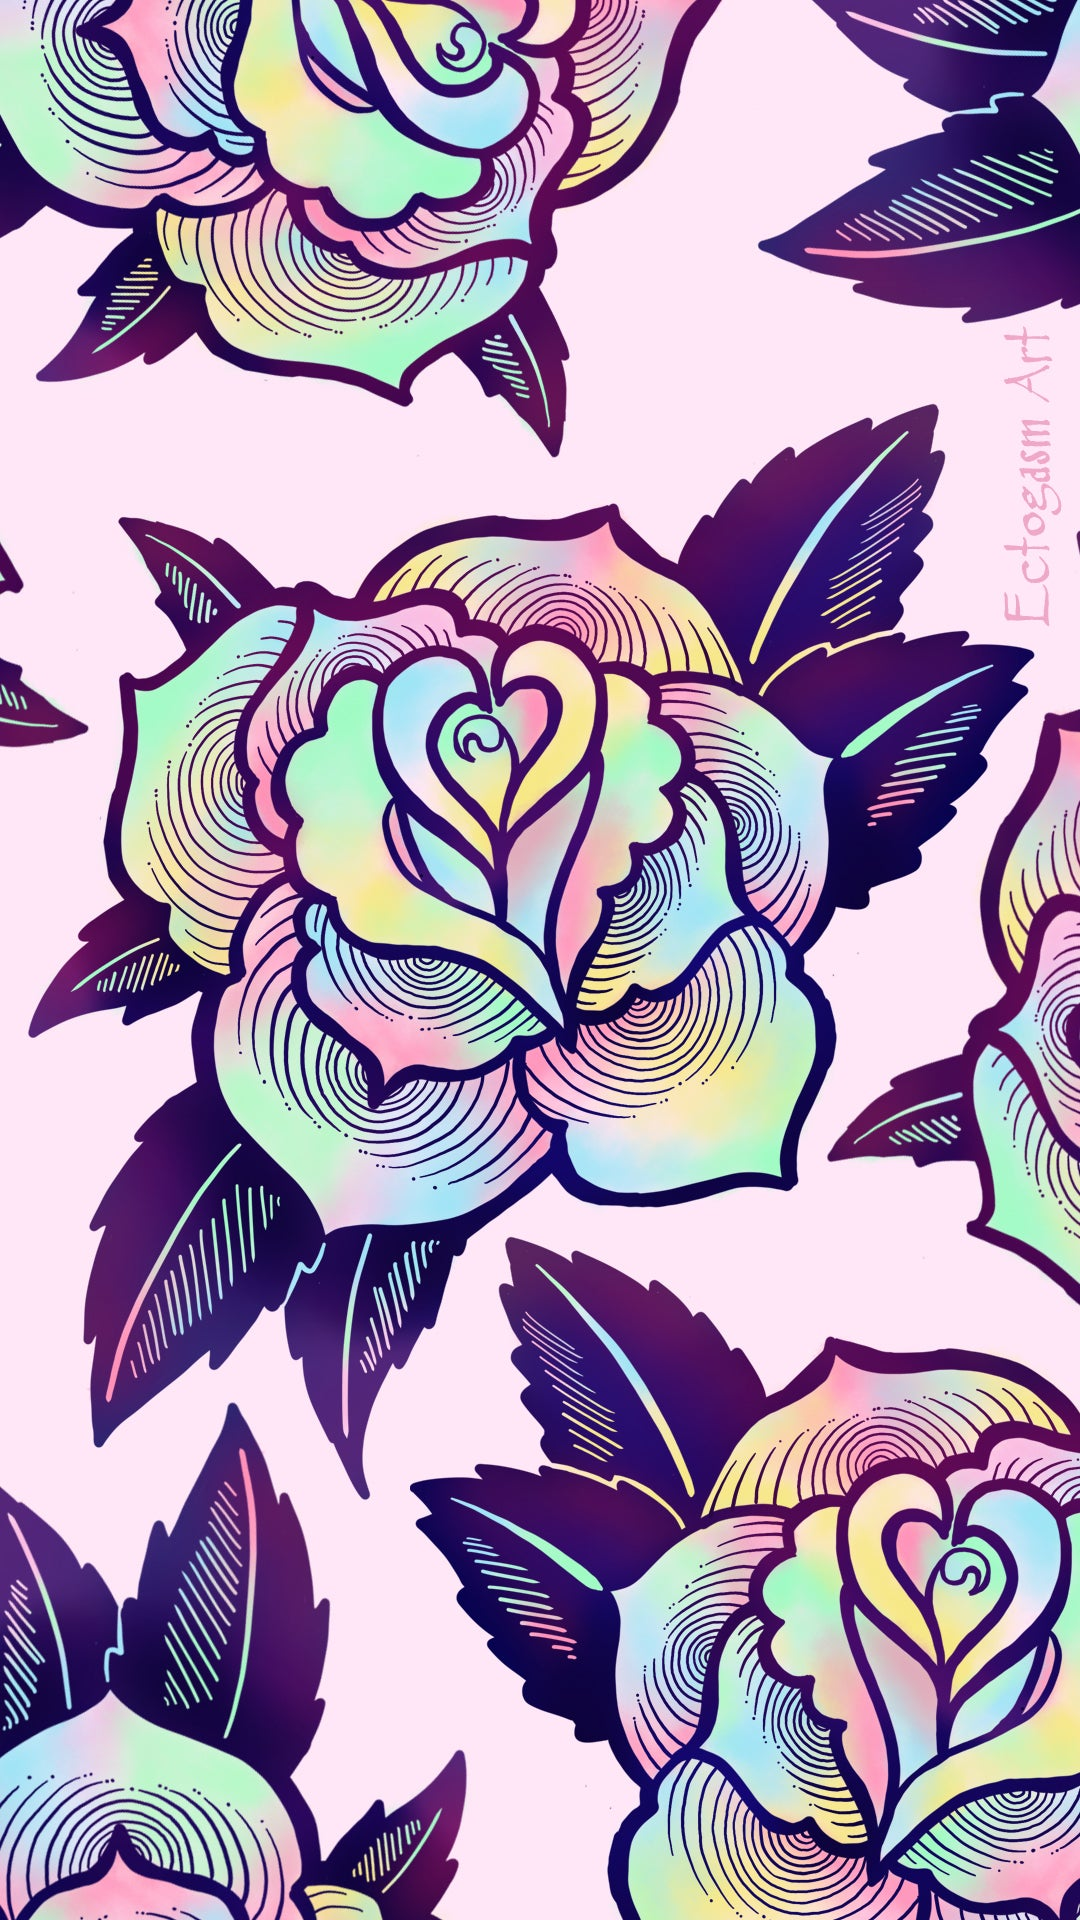 Psychedelic Rose Phone Wallpaper Free Digital Download Ectogasm